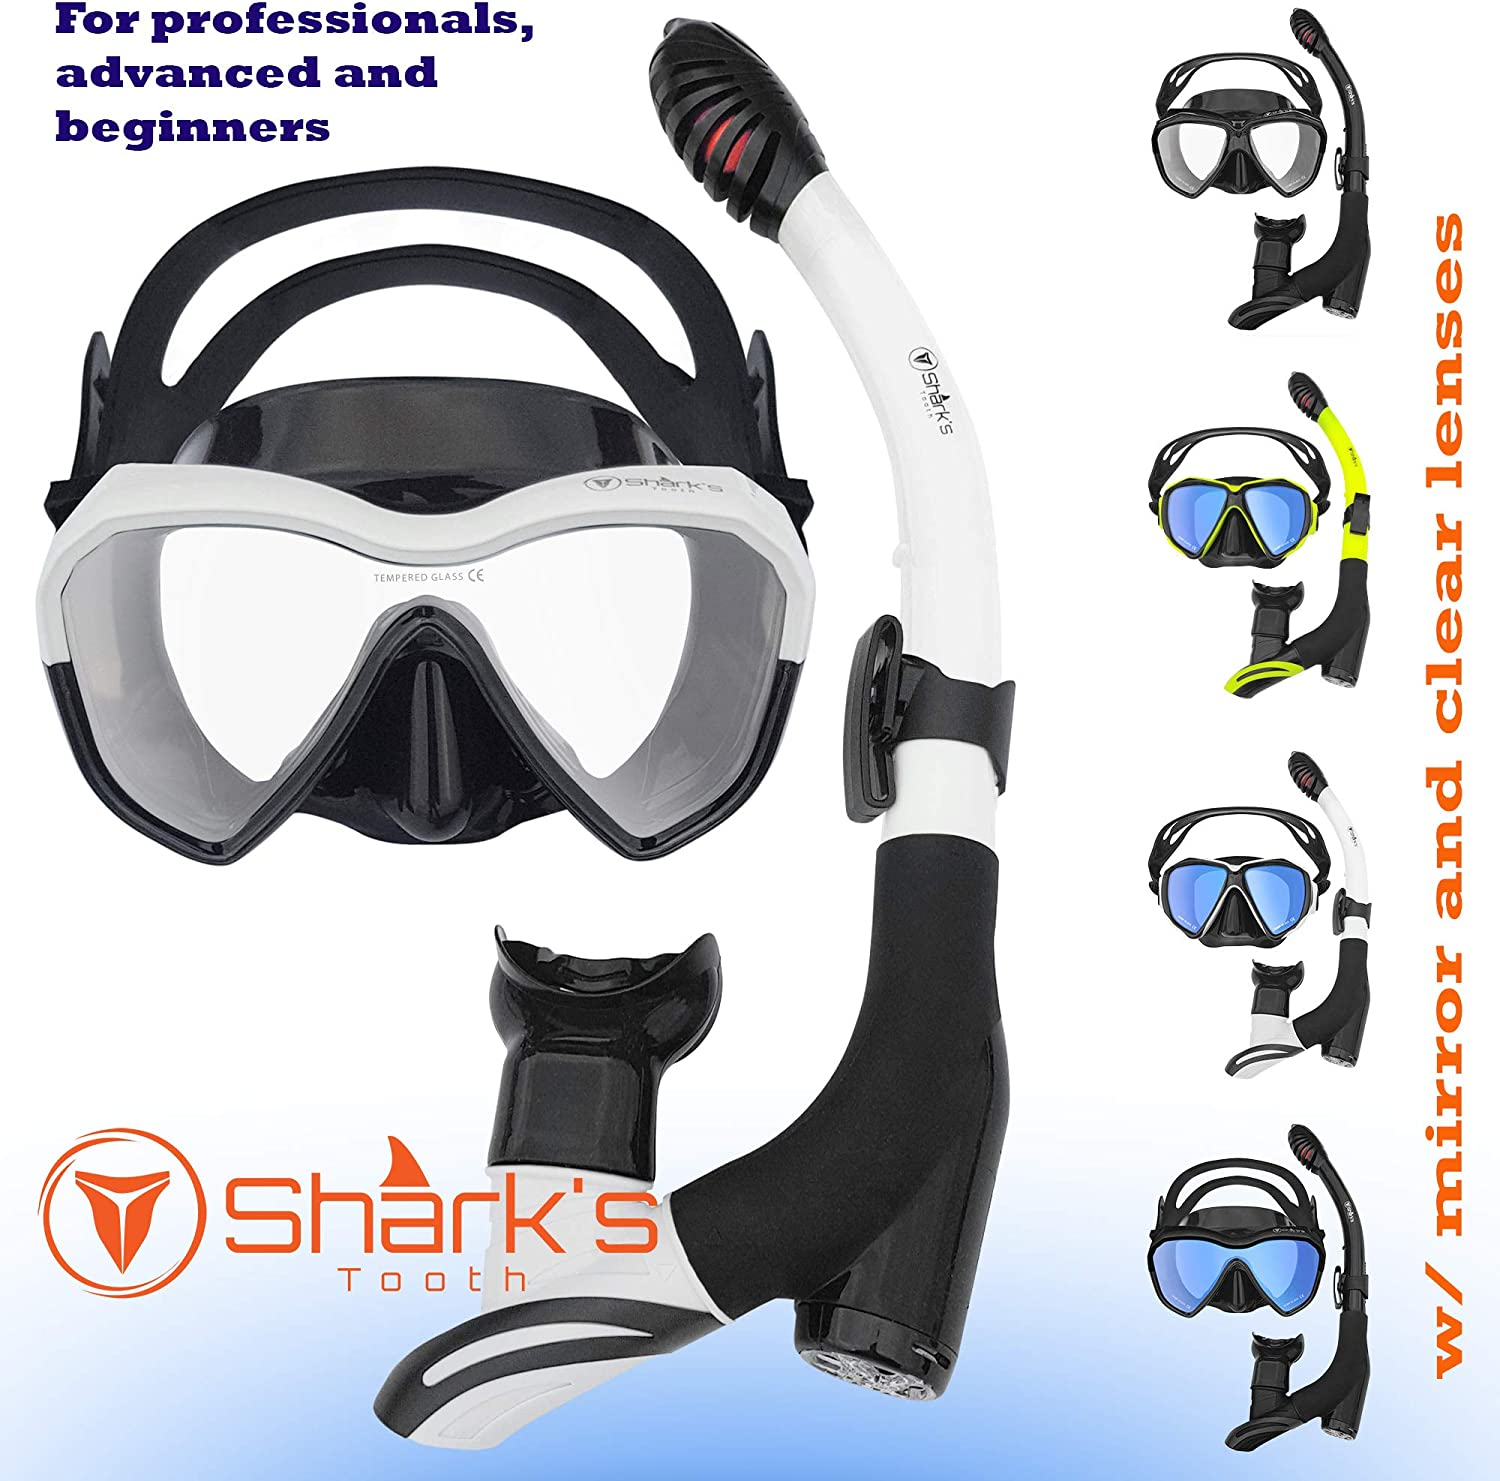 Shark's Tooth Dry Snorkel Set with Anti-Fogging Diving Skuba Mask and for Adult Youth and Kids, Surface Swimming and Snorkeling Mask, 180° Panoramic View Anti-Leak